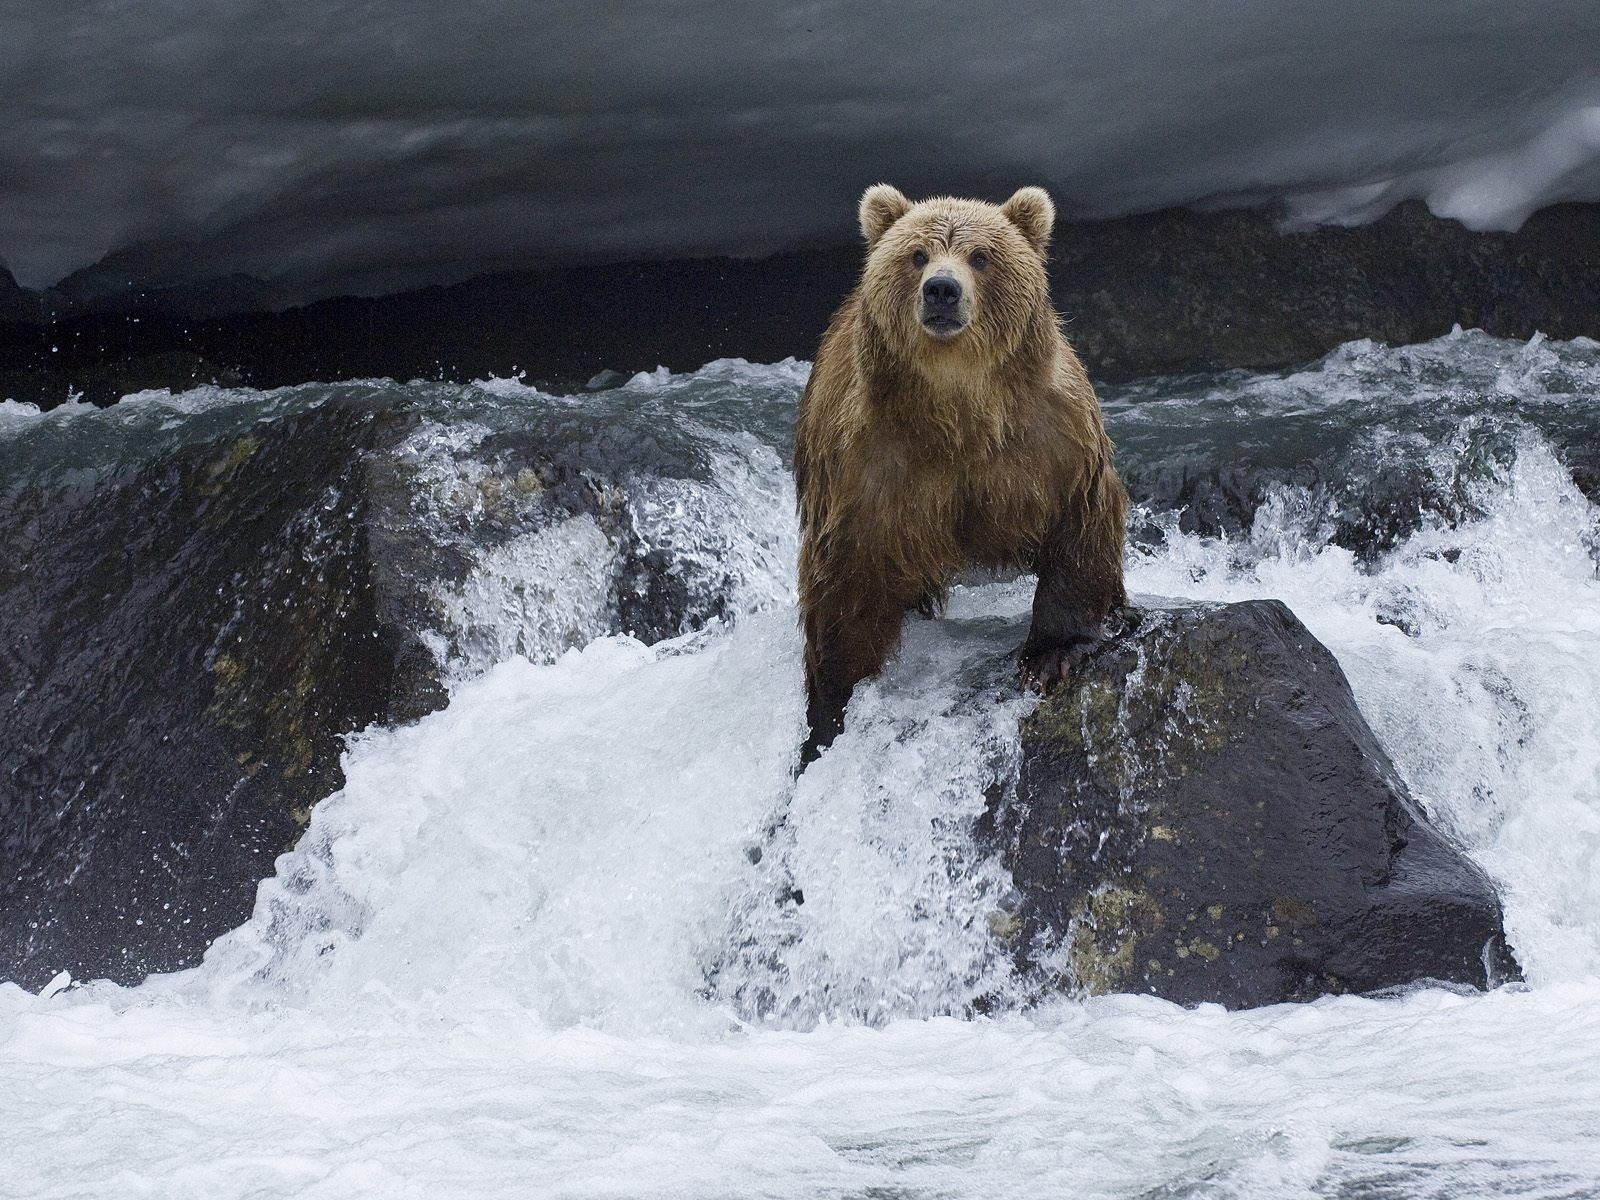 Download mobile wallpaper Bears, Animals, Water for free.